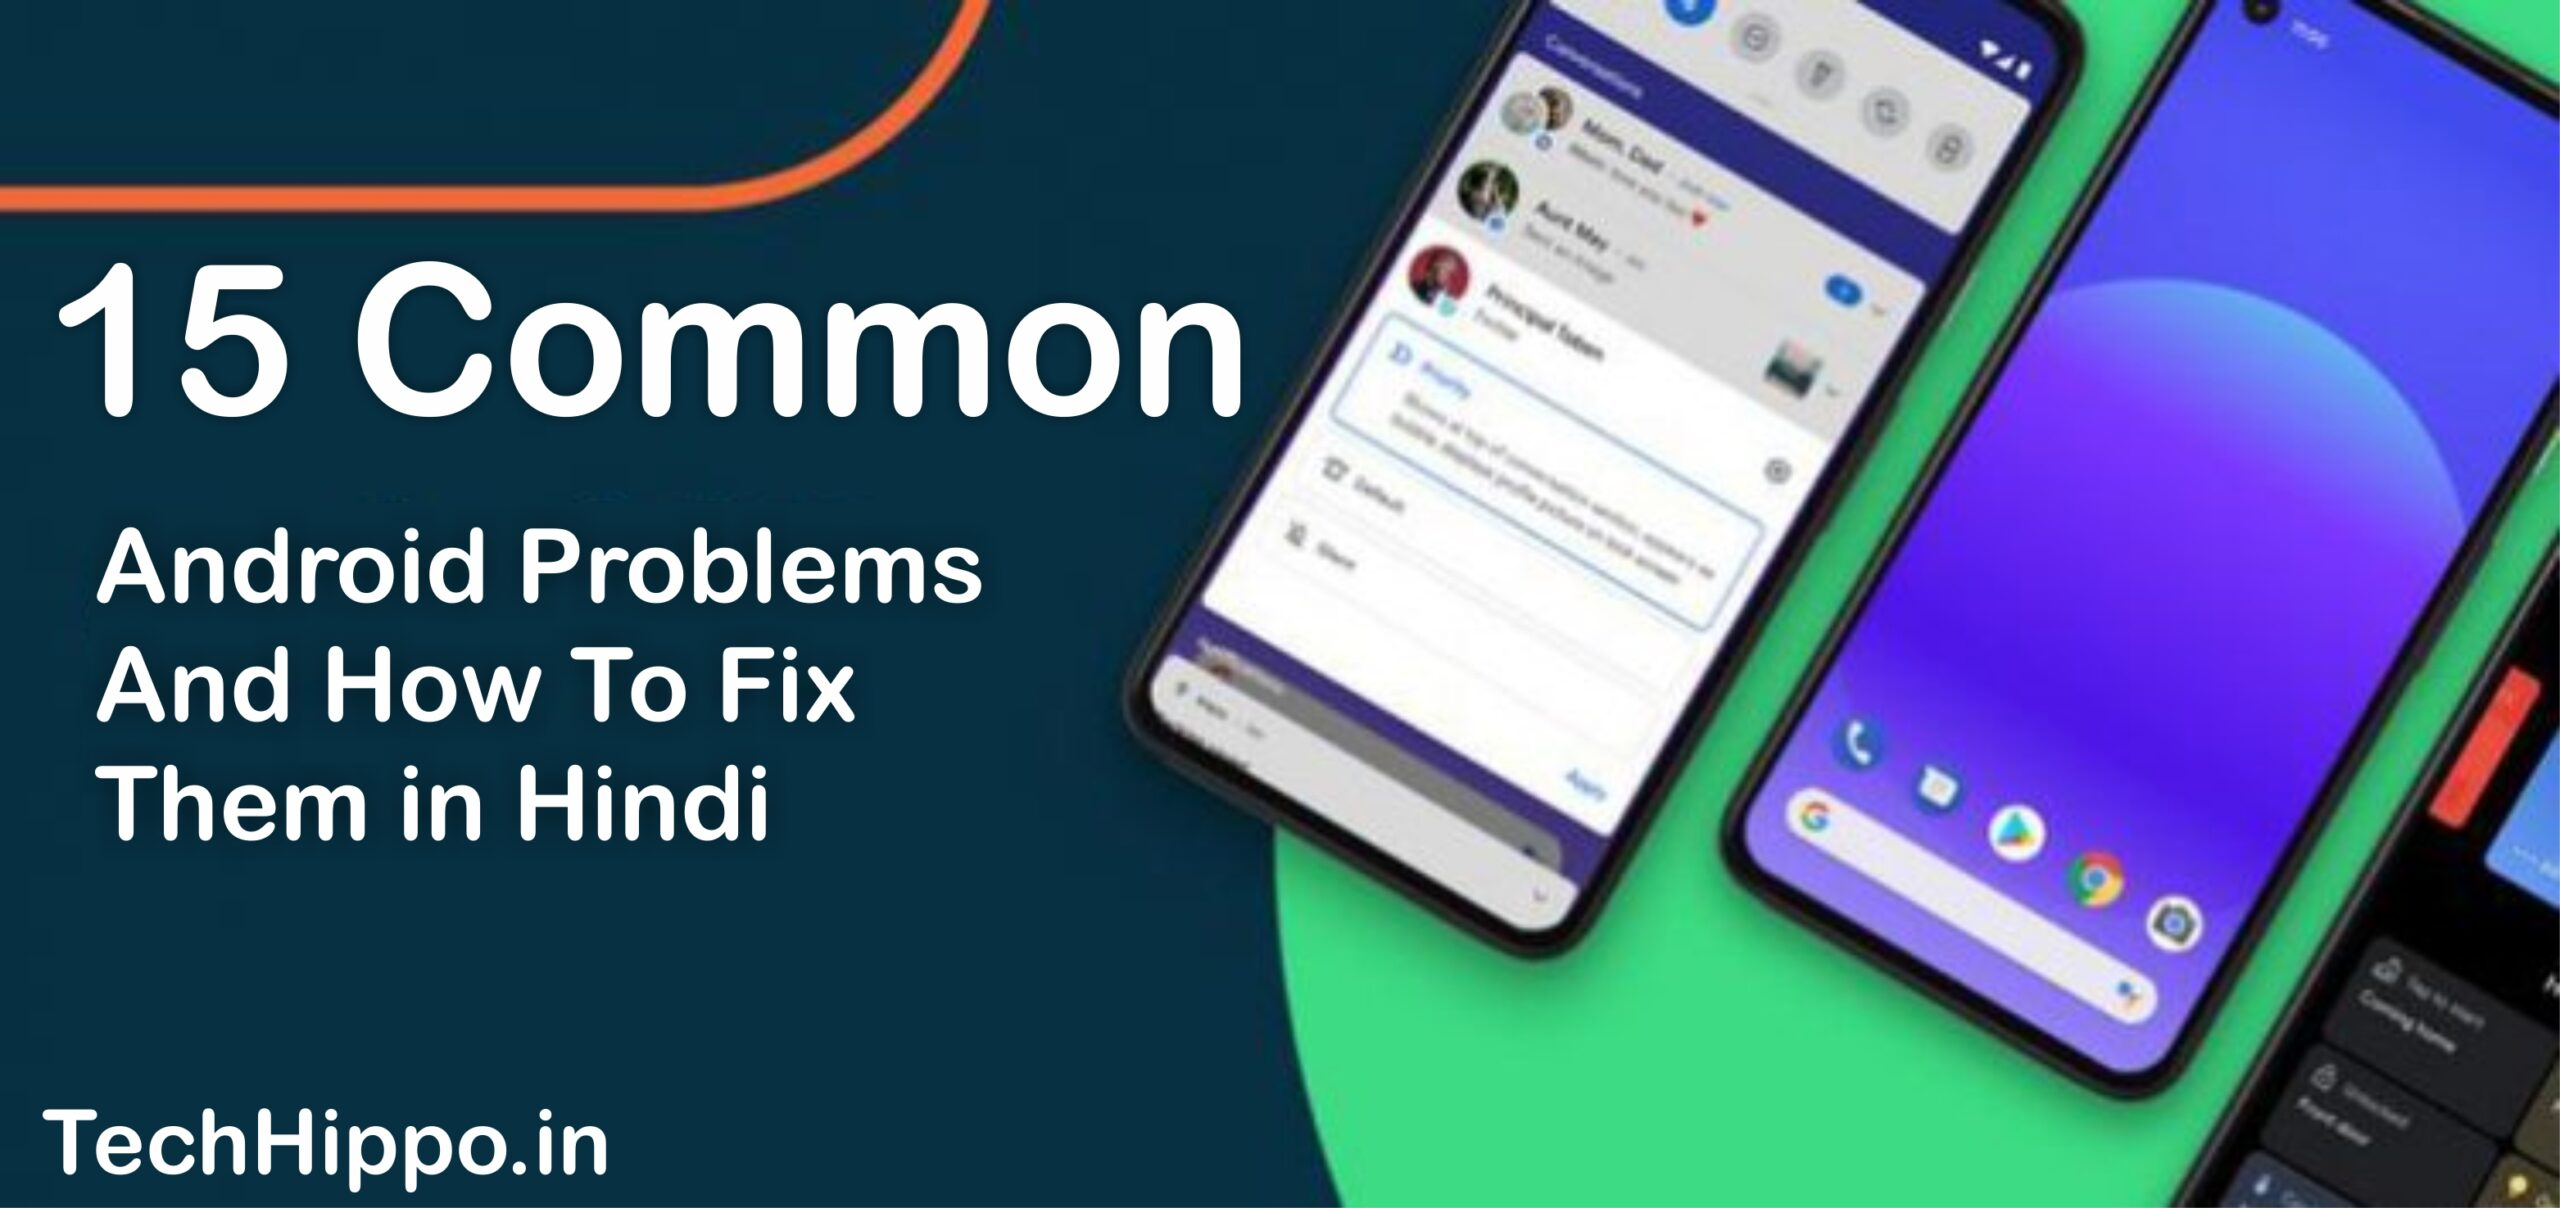 15 Common Android Problems And How To Fix Them in Hindi